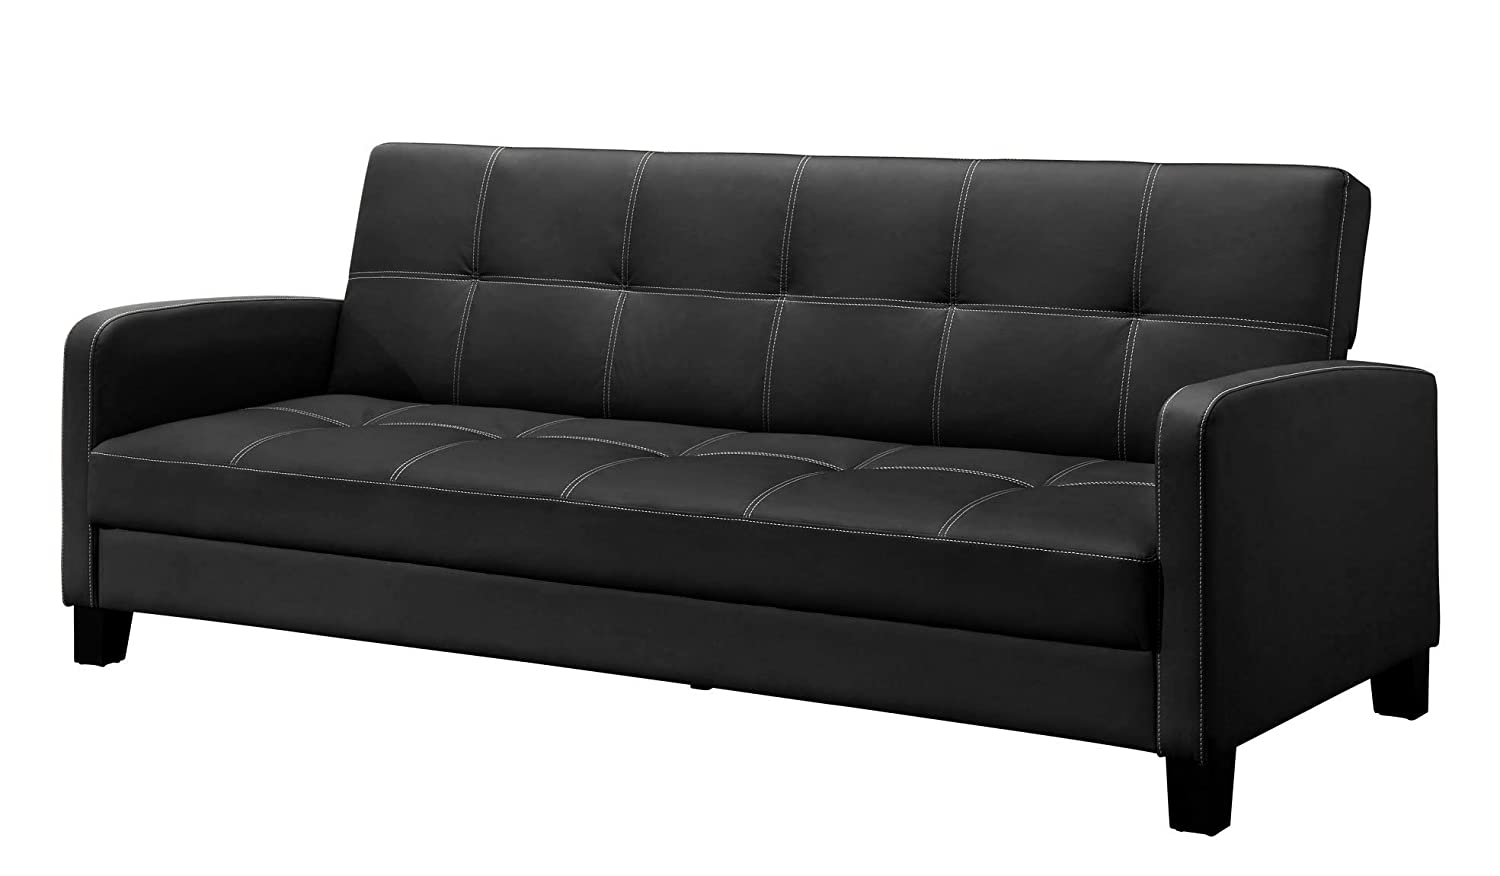 sleeper sofas with storage bed furniture black plus zen casamode pu sofa by avalon living convertible